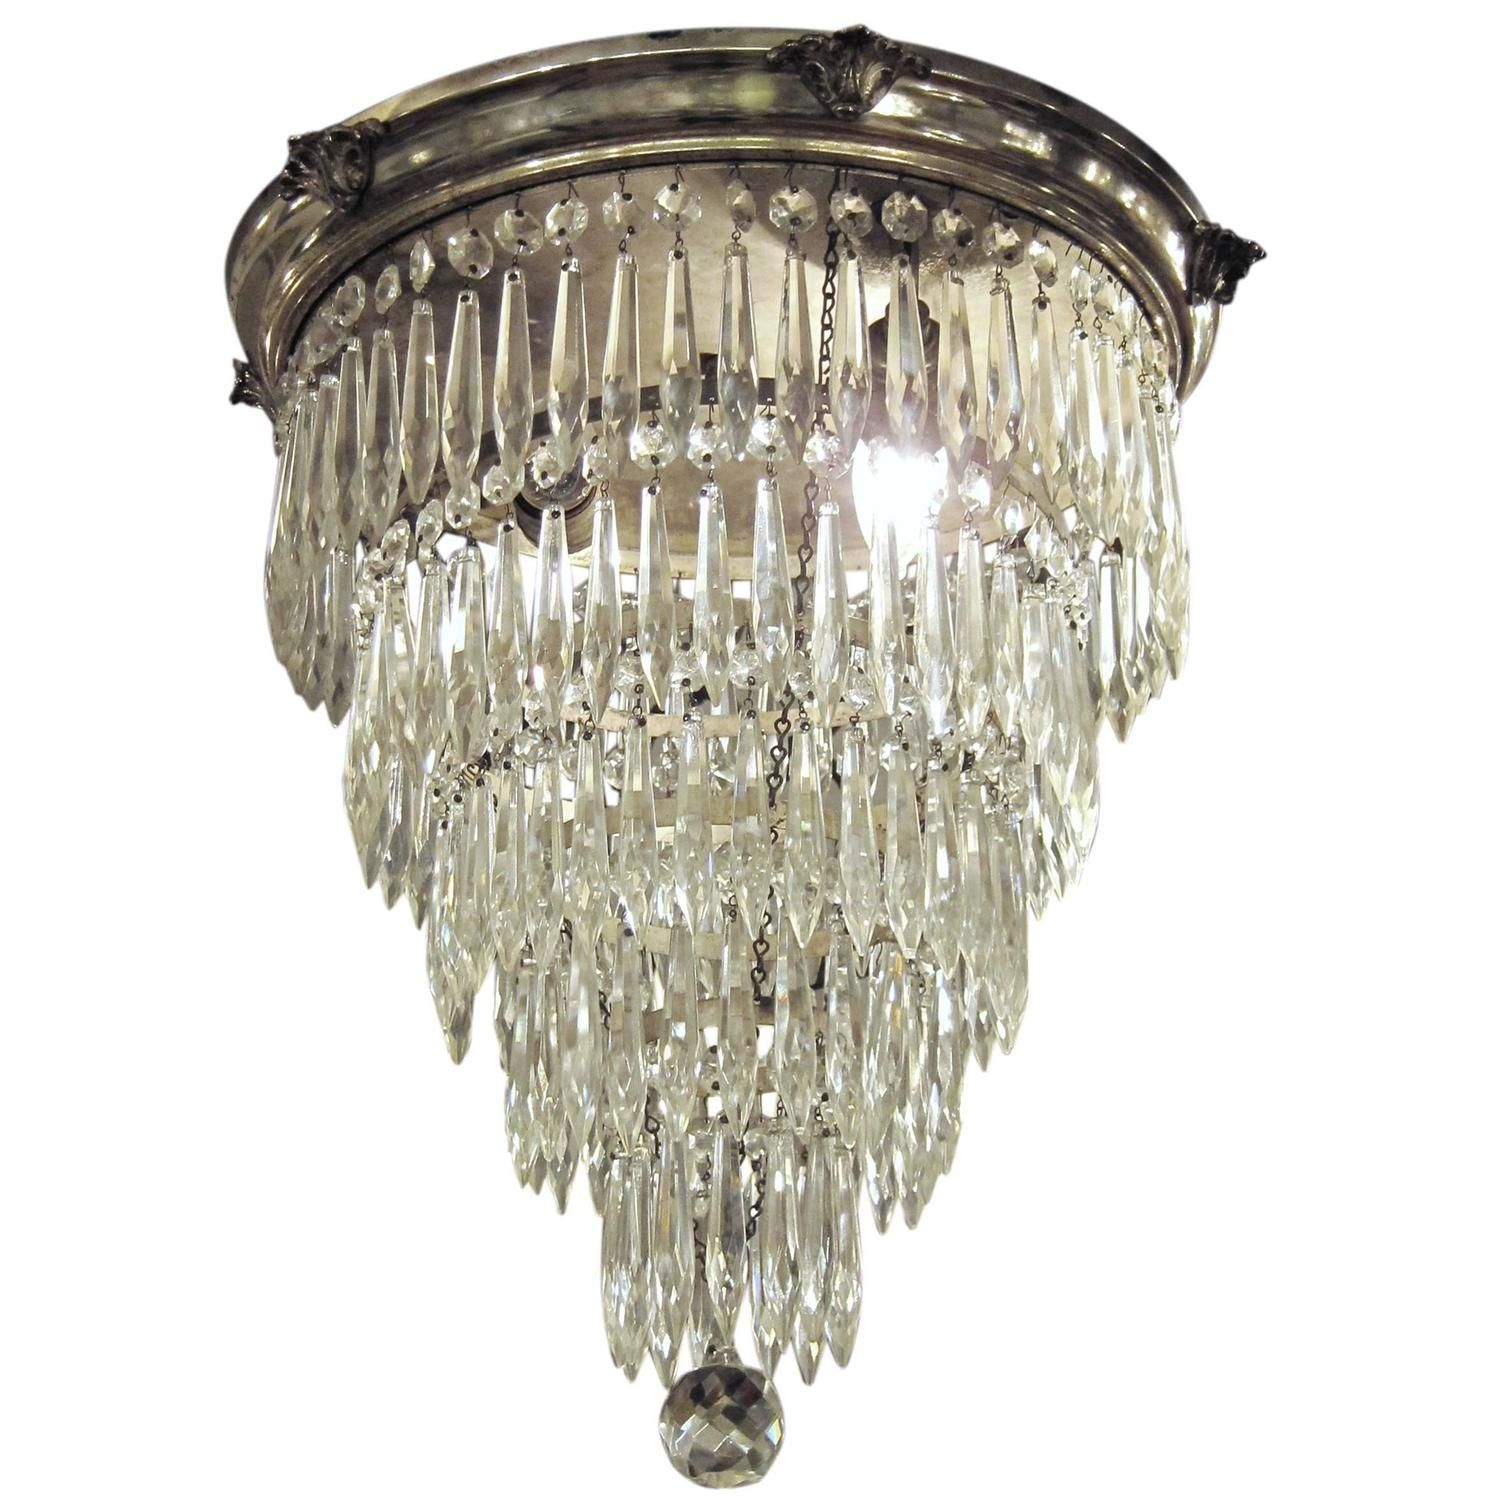 1920s Silver Plated Crystal Wedding Cake Flush Mount Chandelier With Five Tiers